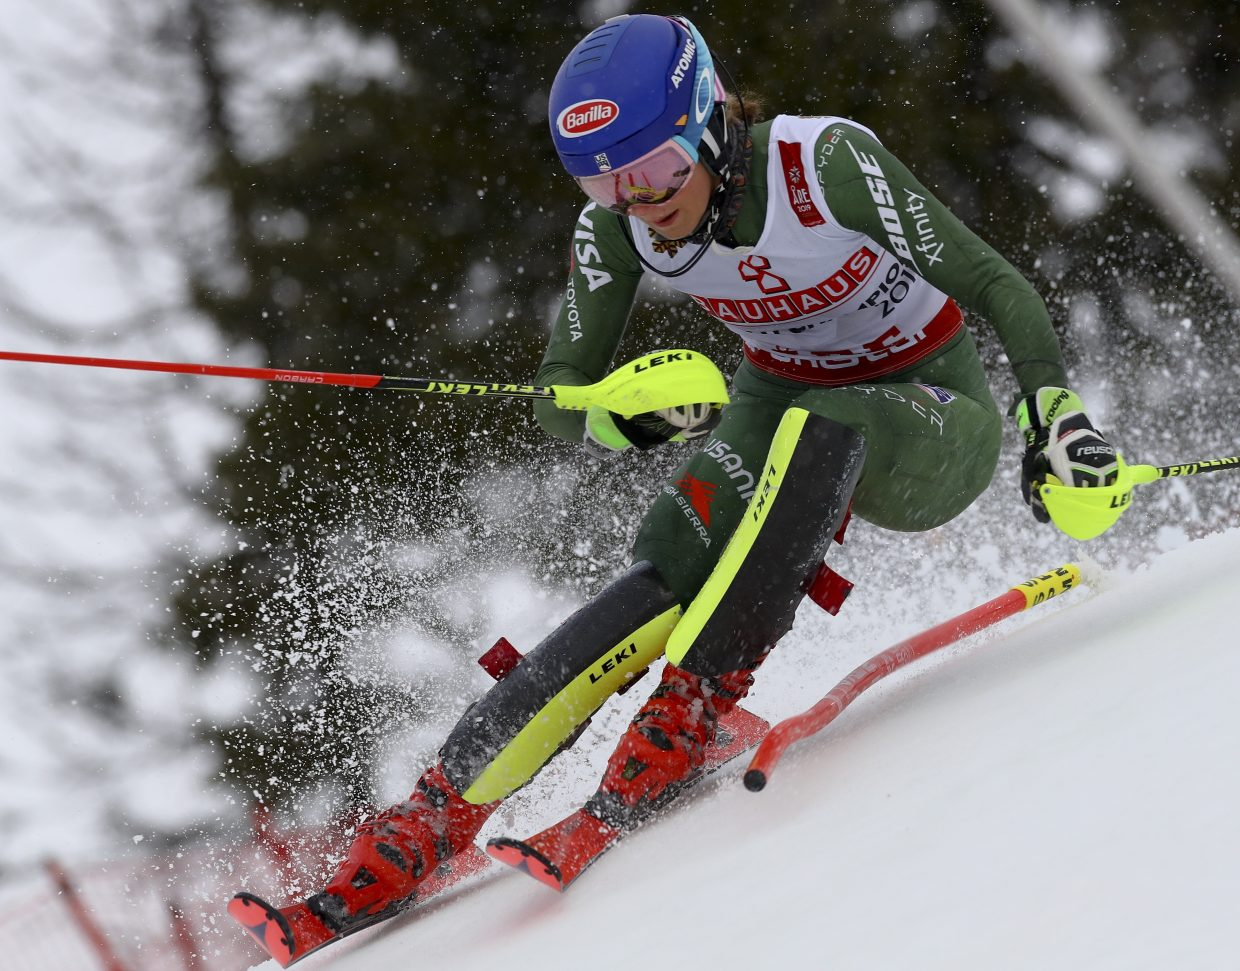 Mikaela Shiffrin charges down during the first run of Saturday's FIS Alpine World Ski Championships in Are, Sweden. Shiffrin was third after the first run.